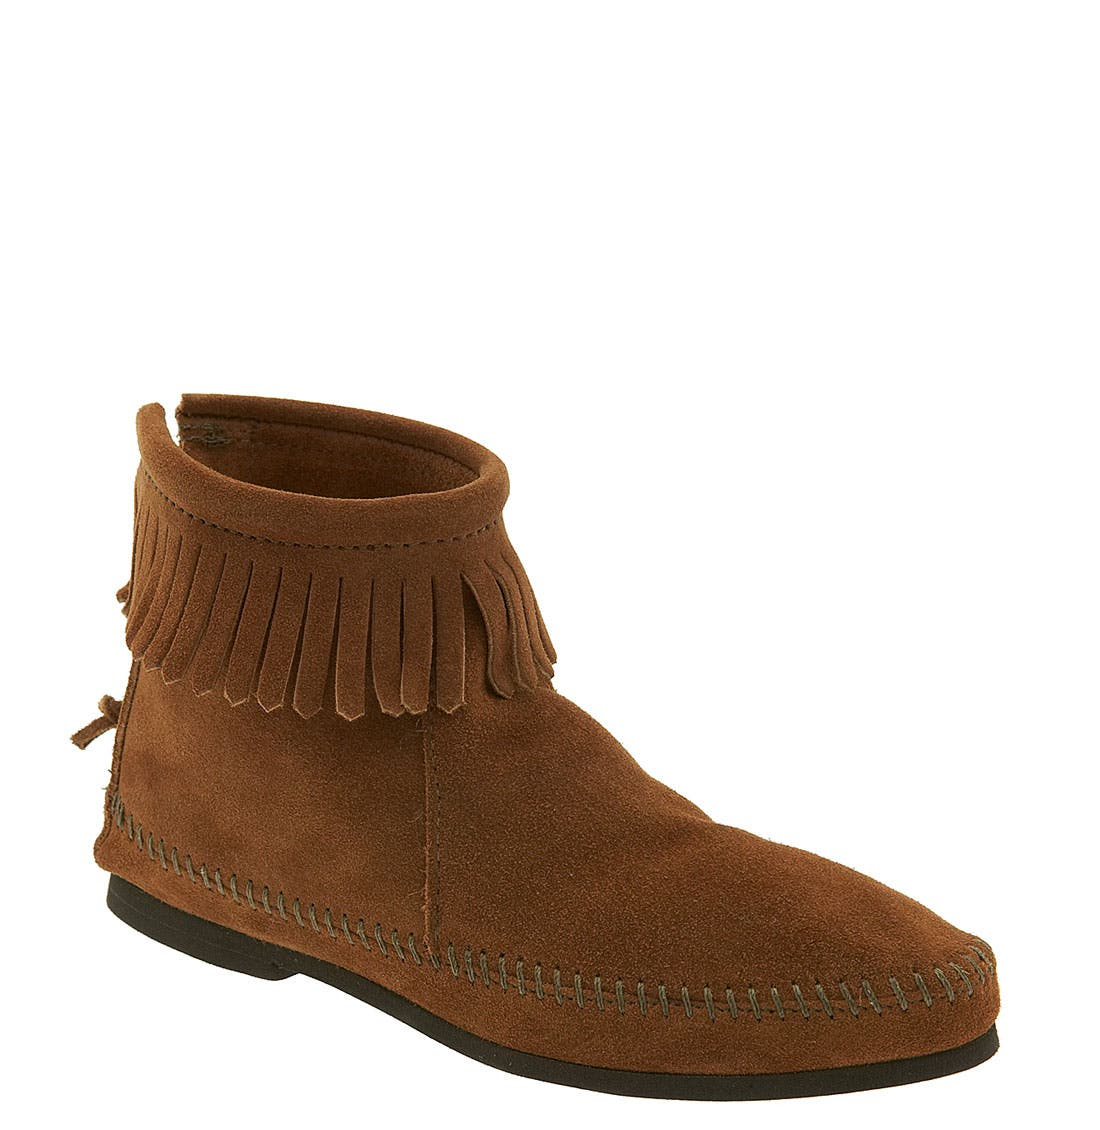 Alternate Image 1 Selected - Minnetonka Fringed Short Boot